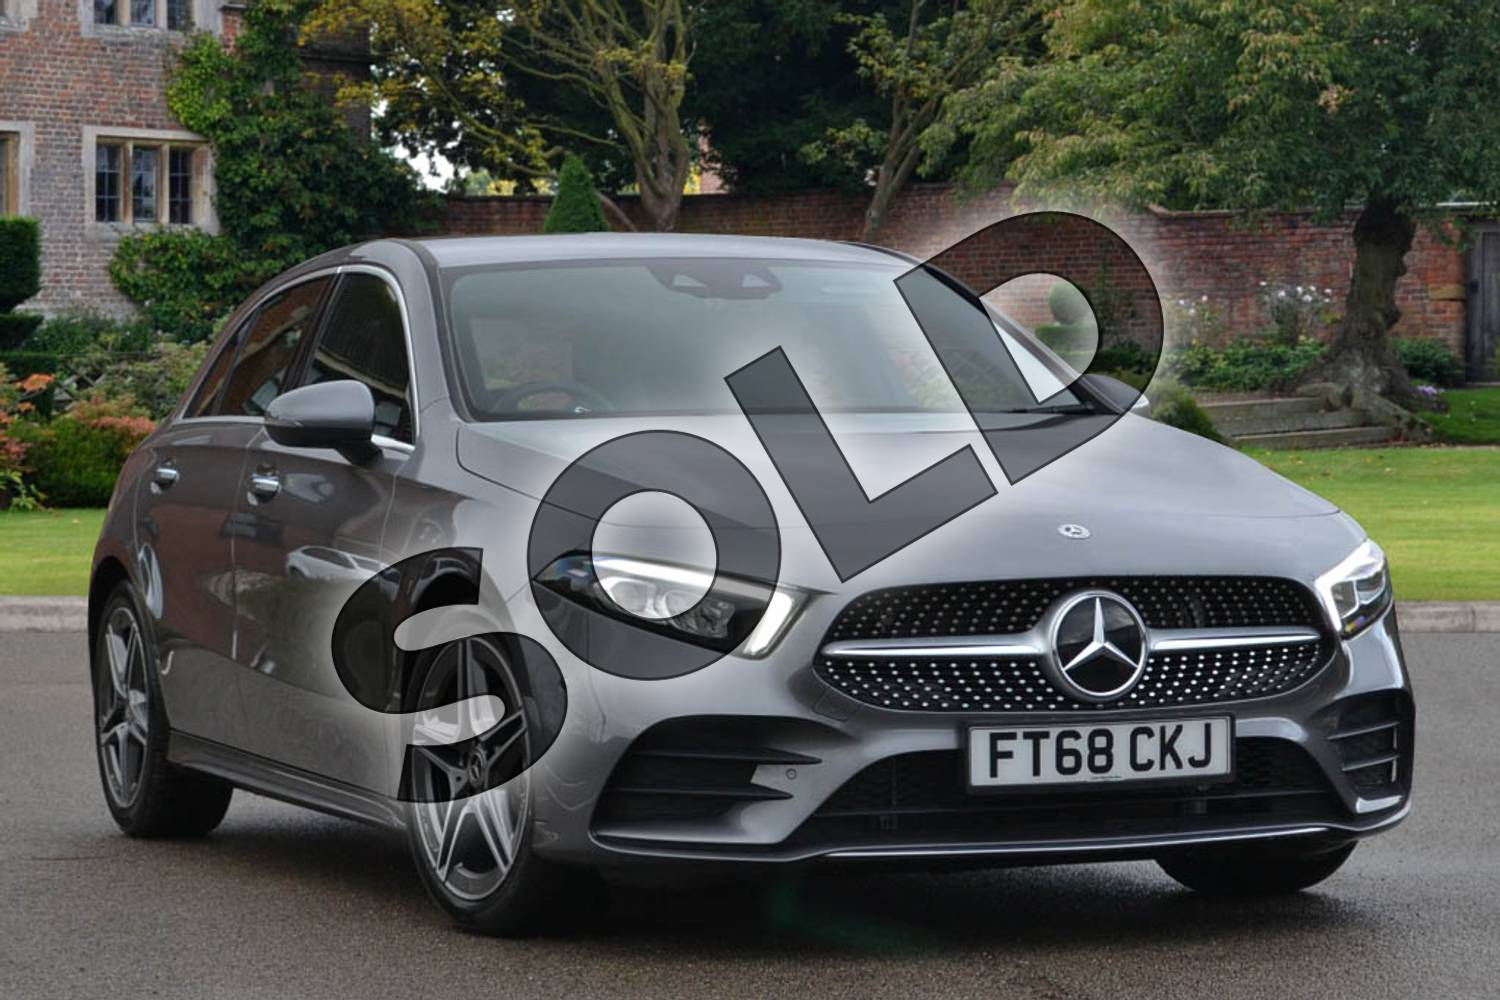 2018 Mercedes-Benz A Class Diesel Hatchback A180d AMG Line Executive 5dr Auto in Mountain Grey Metallic at Mercedes-Benz of Lincoln